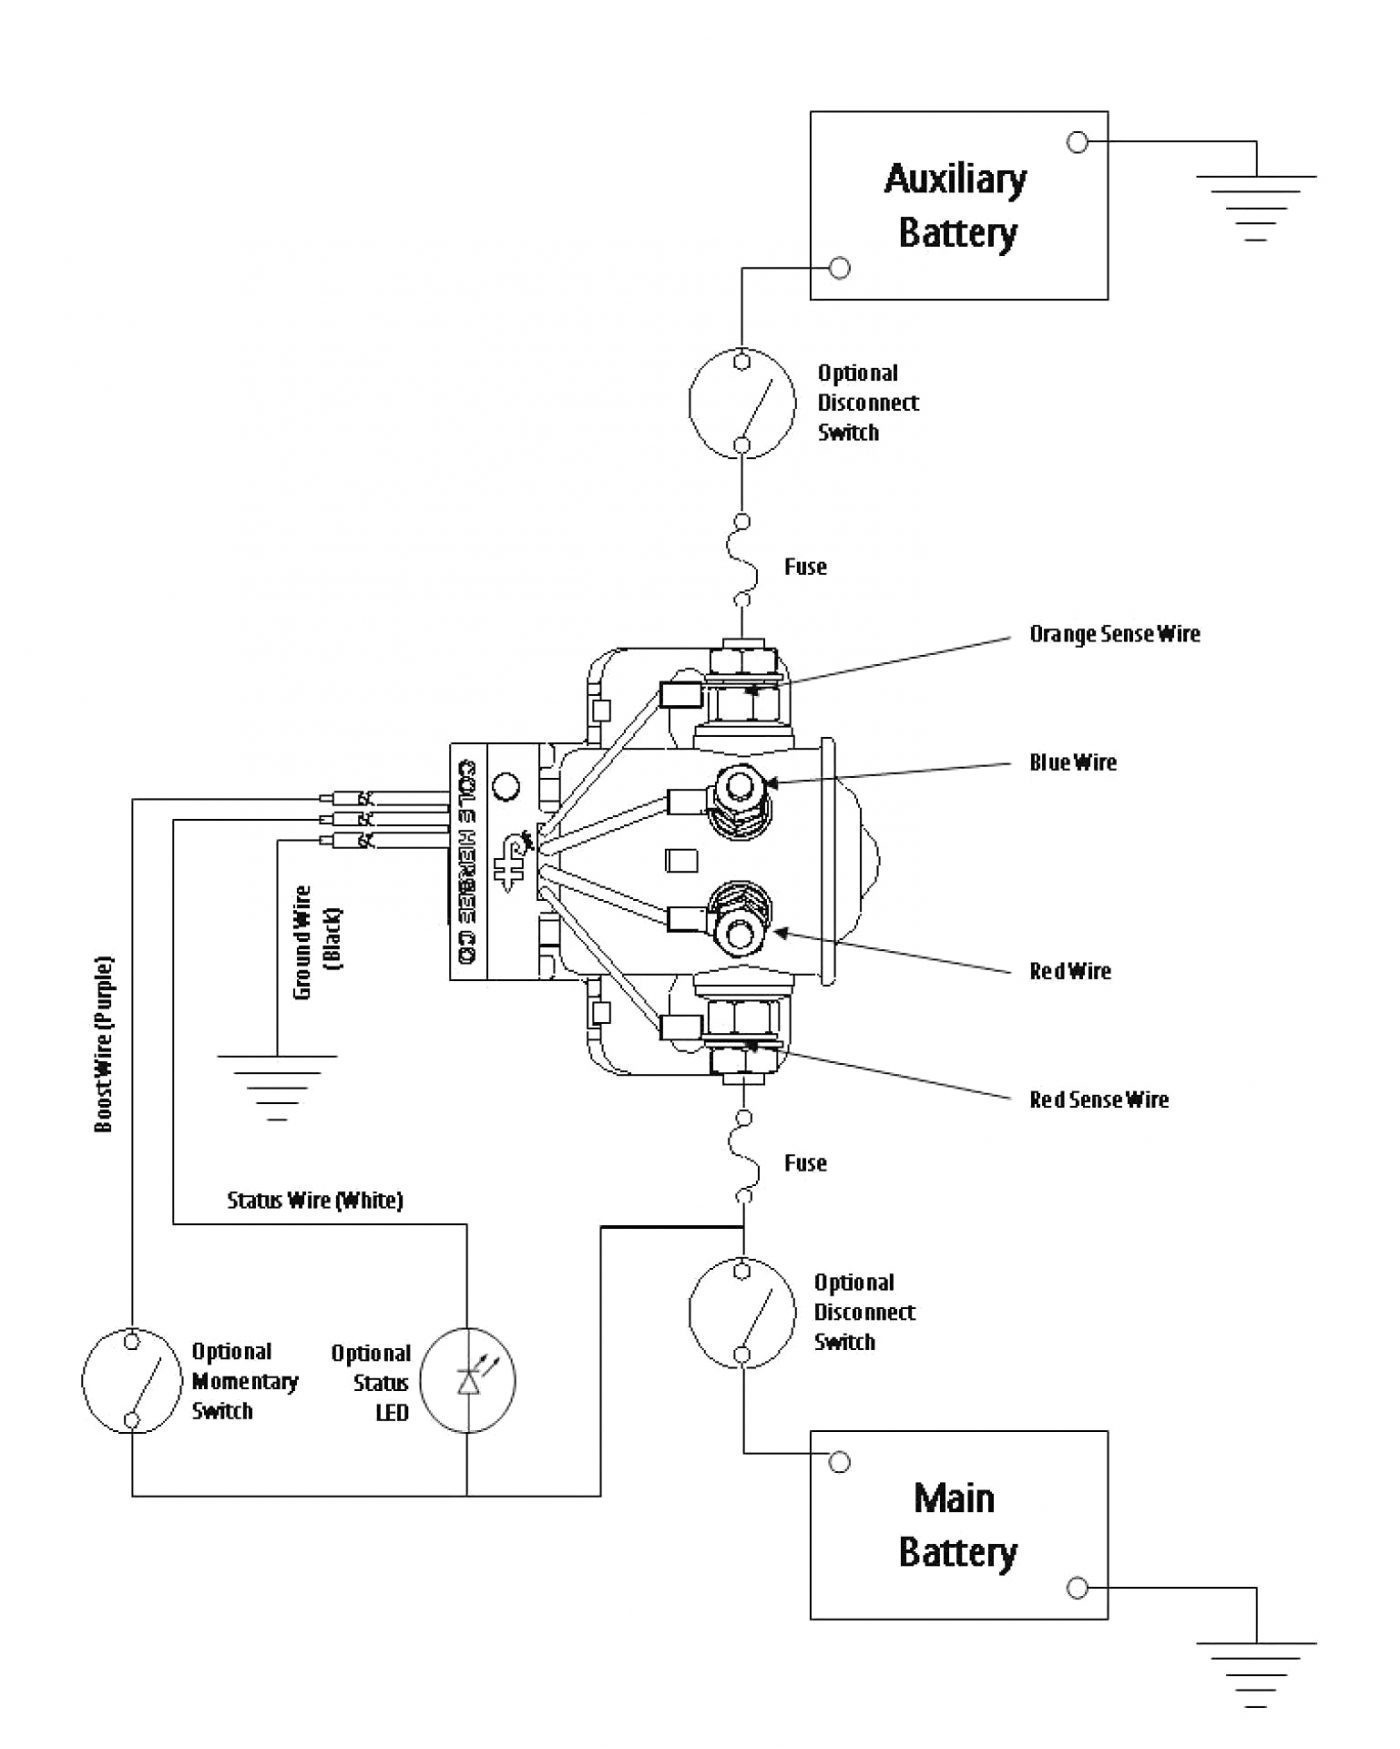 Infiniti Qx4 Engine Diagram Infiniti G35 Battery Wiring Diagram Schematics Wiring Diagrams • Of Infiniti Qx4 Engine Diagram